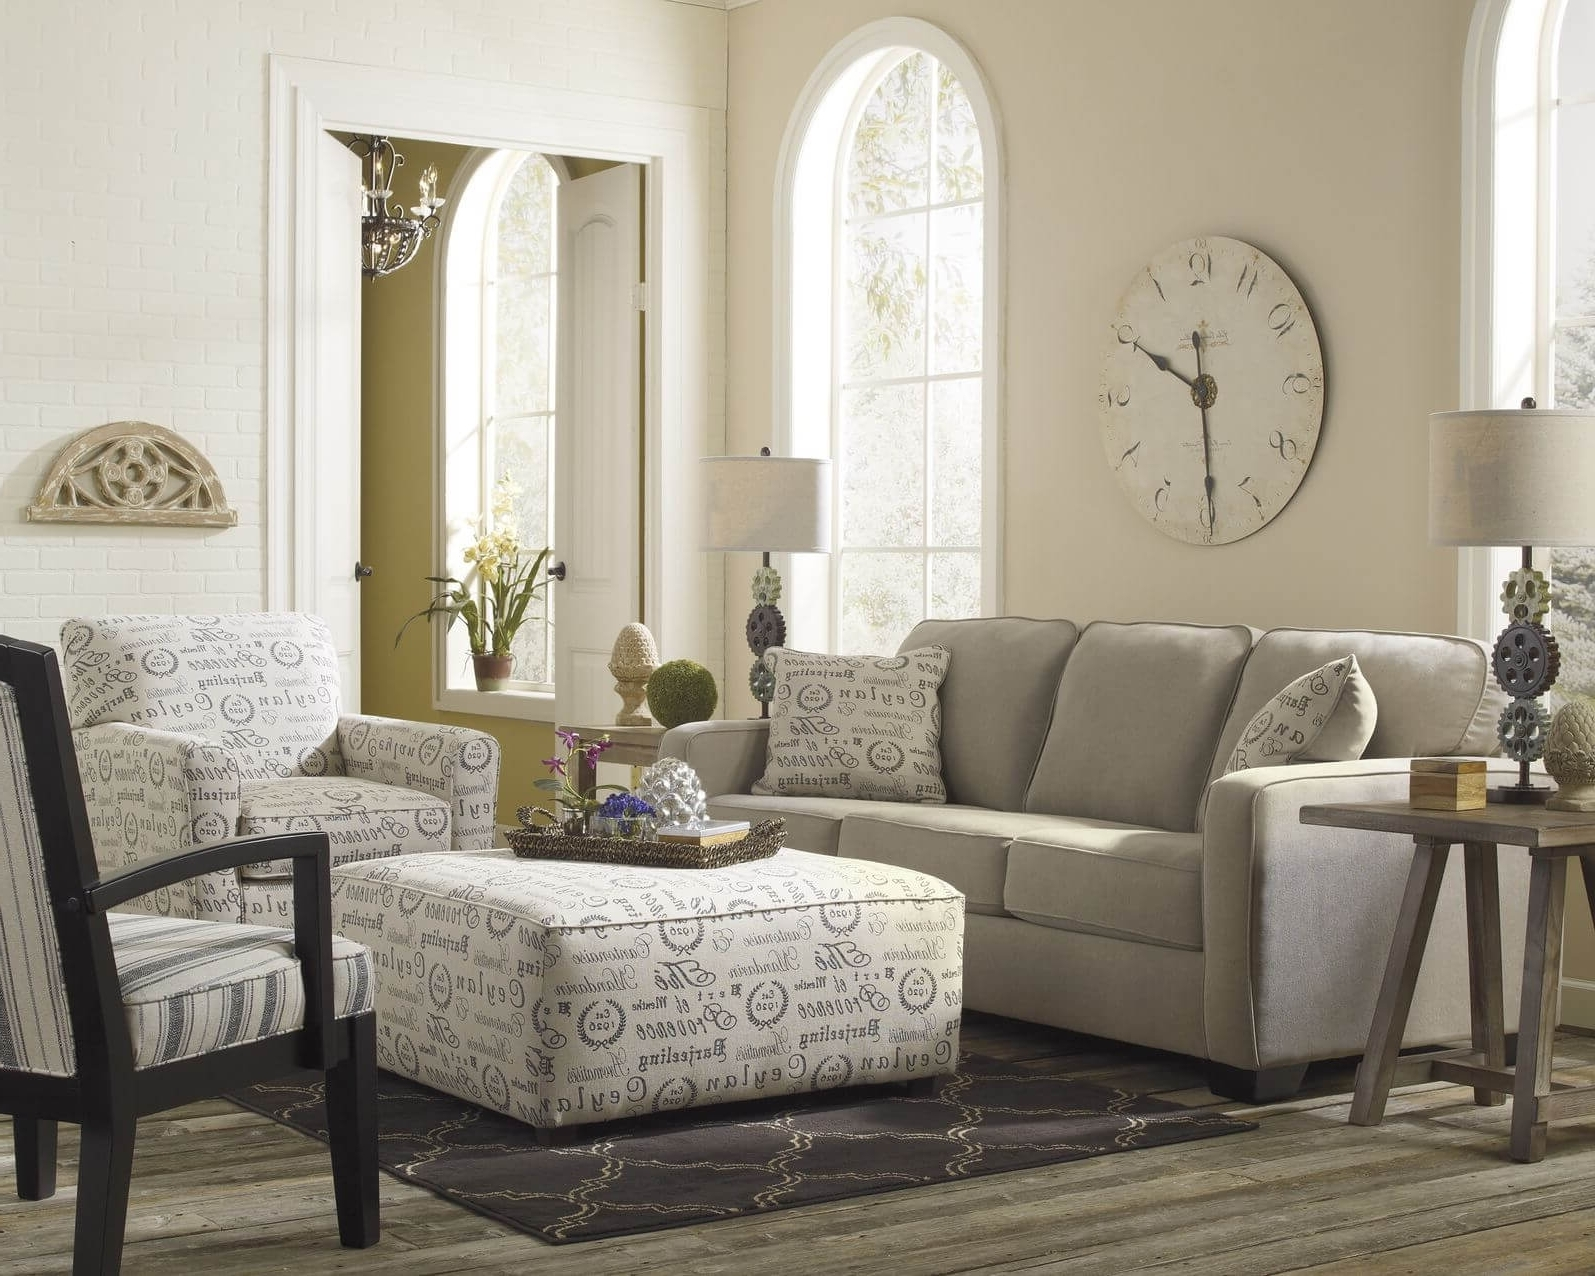 50 Beautiful Living Rooms With Ottoman Coffee Tables Regarding Current Sofas With Ottoman (View 1 of 15)